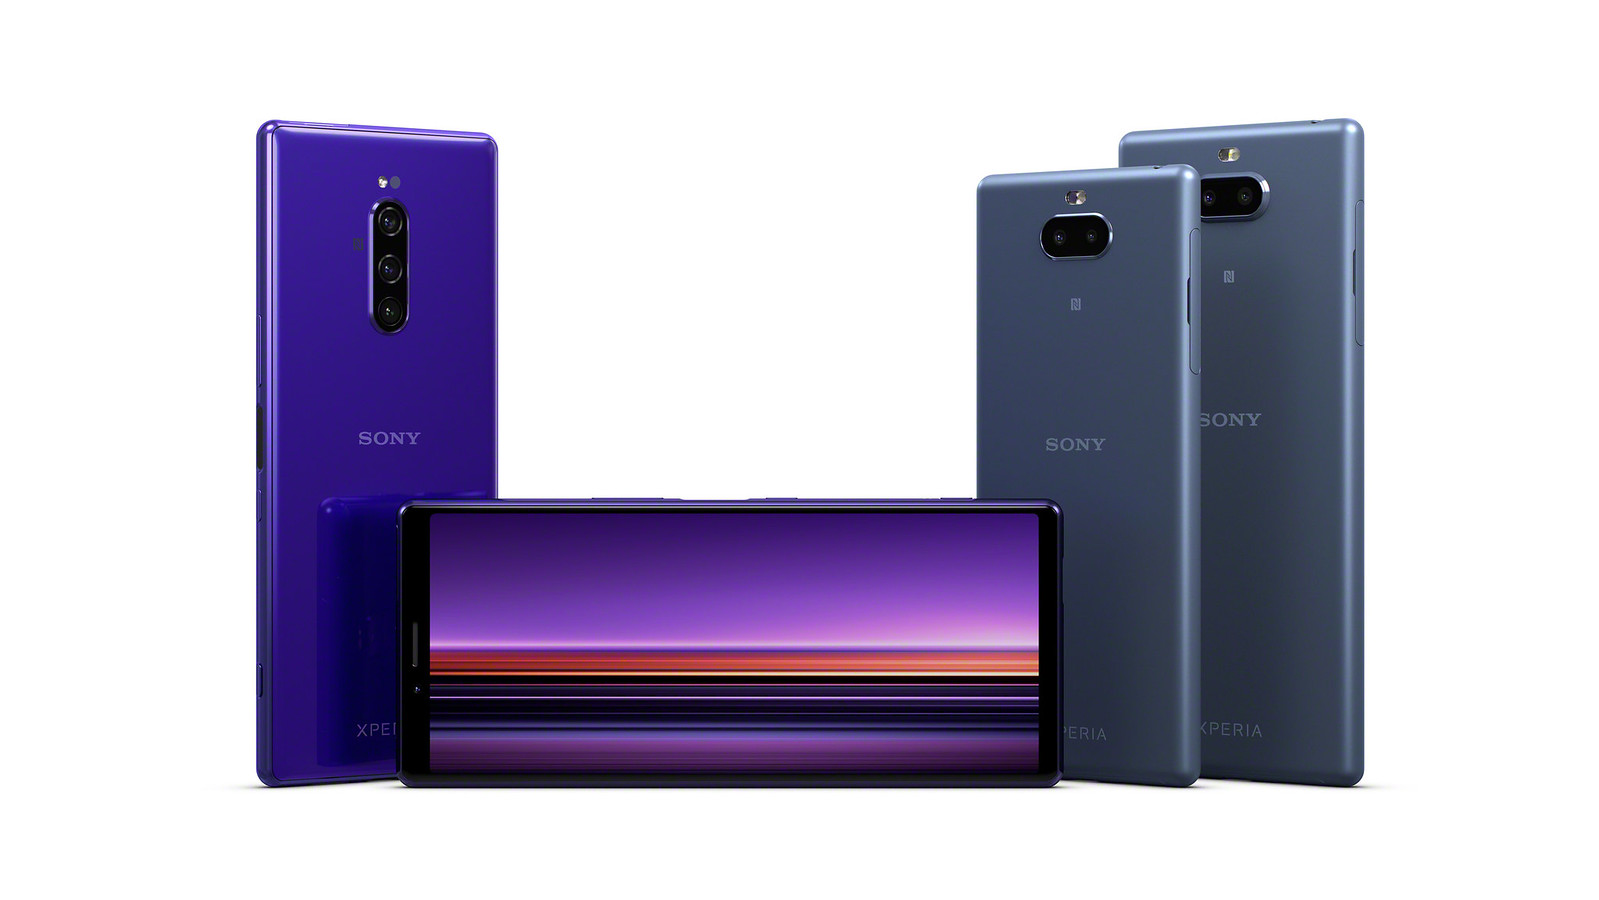 Sony redefines its smartphone vision with the new flagship